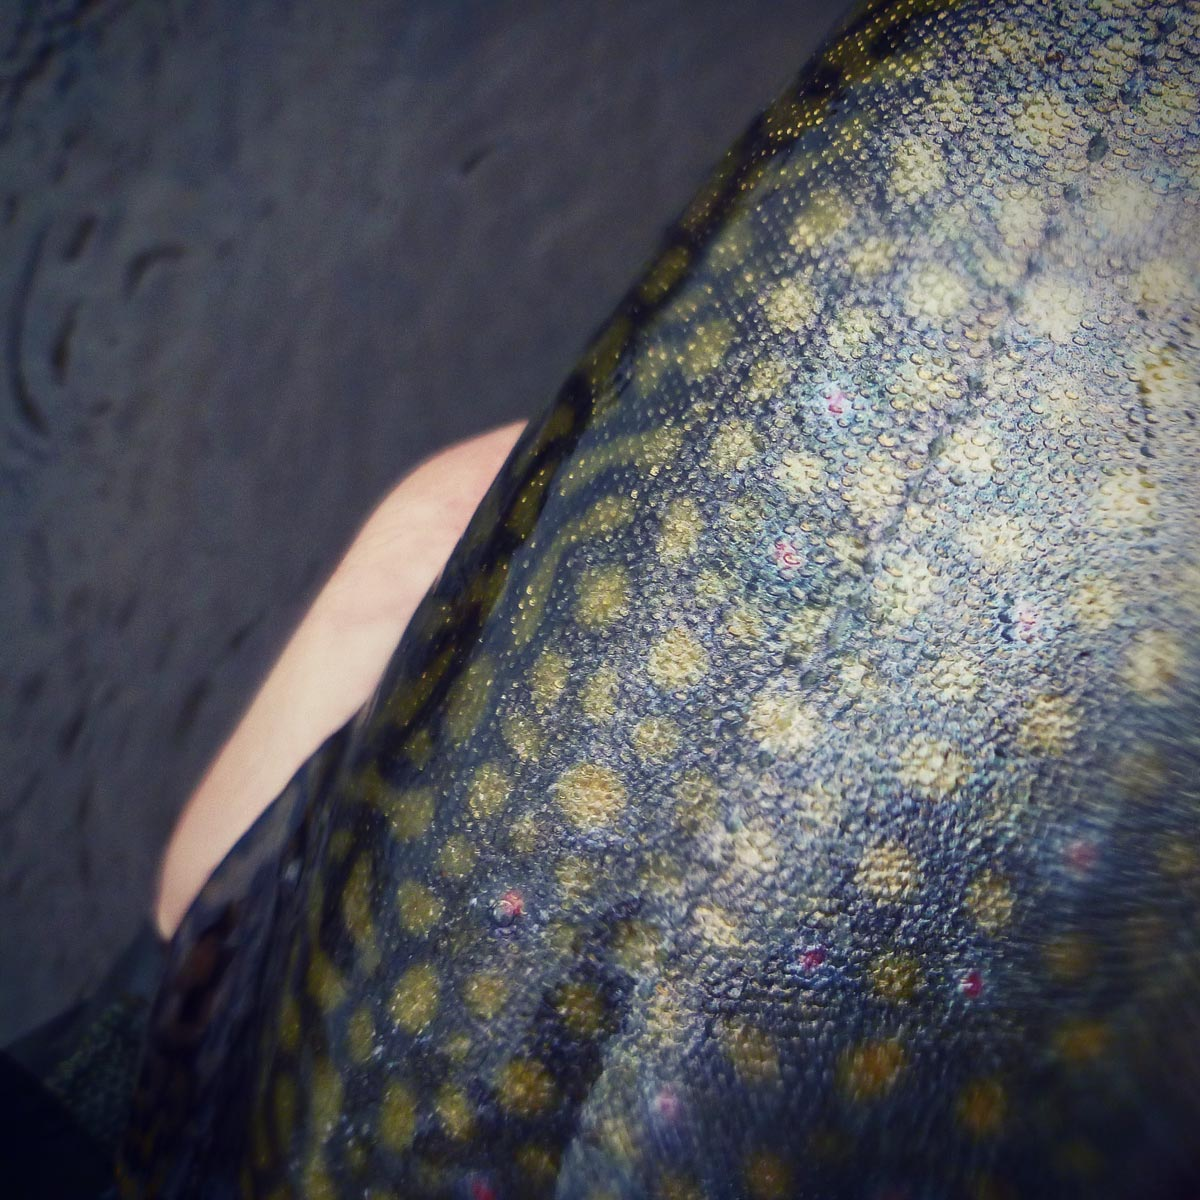 adrift_fly_fishing_labor_graphic_design_minneapolis_andy_weaverling_driftless_big_brook_trout_19